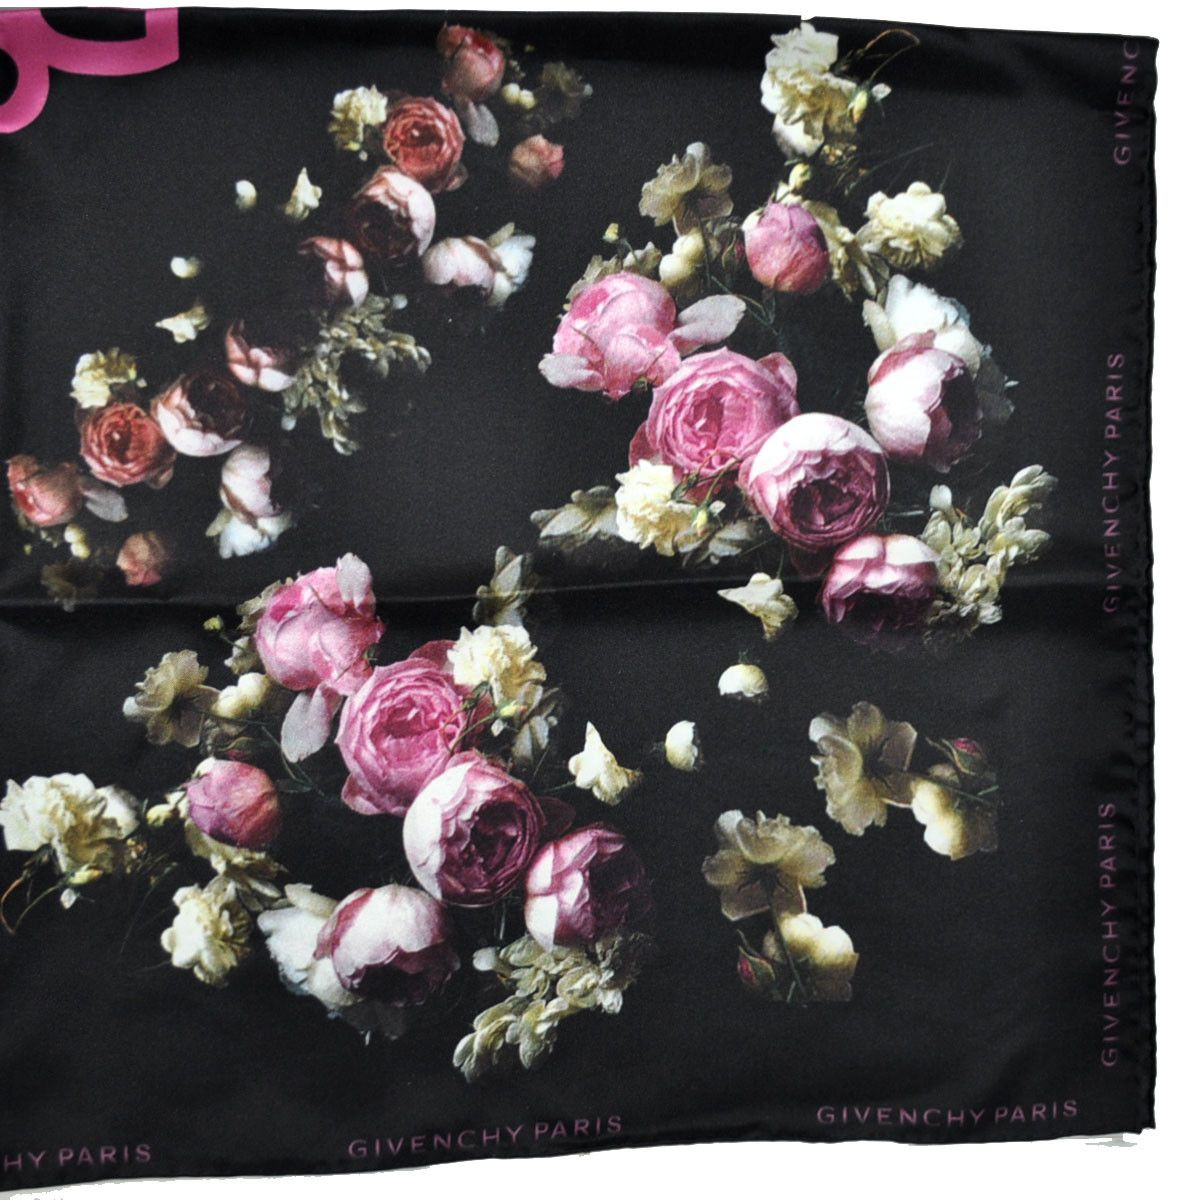 a6517dbe5f4 Authentic Givenchy scarf with black/ pink roses/ floral design, HDG (Hubert  de Givenchy) initials, twill silk large square foulard